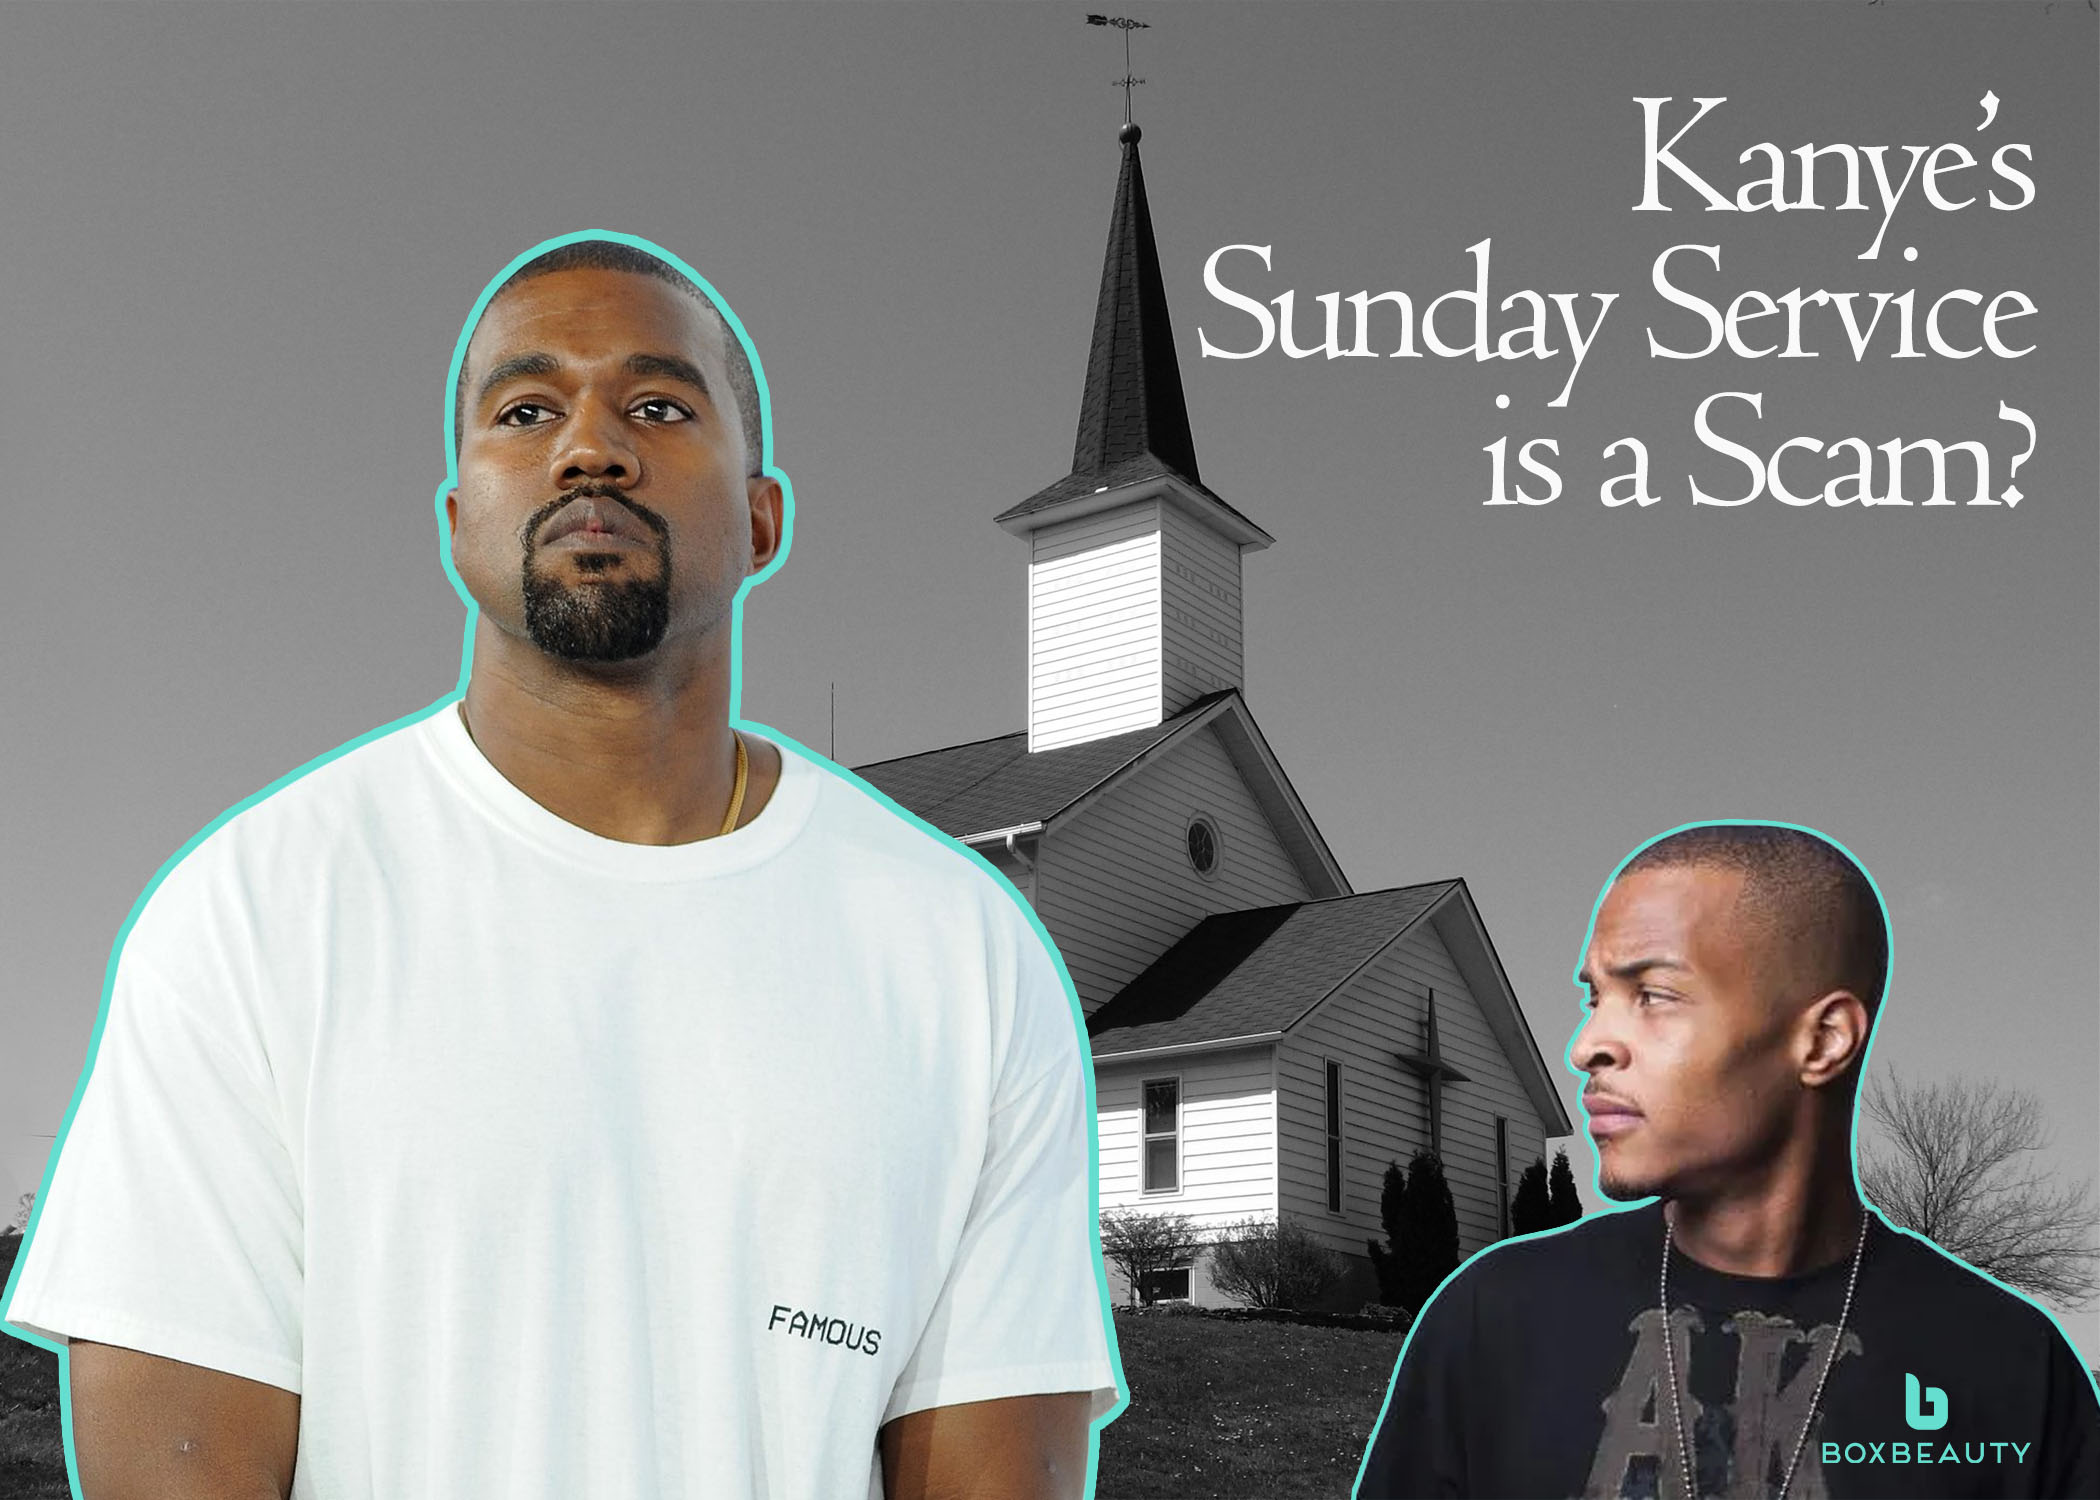 Is Kanye's Sunday Service a Scam?